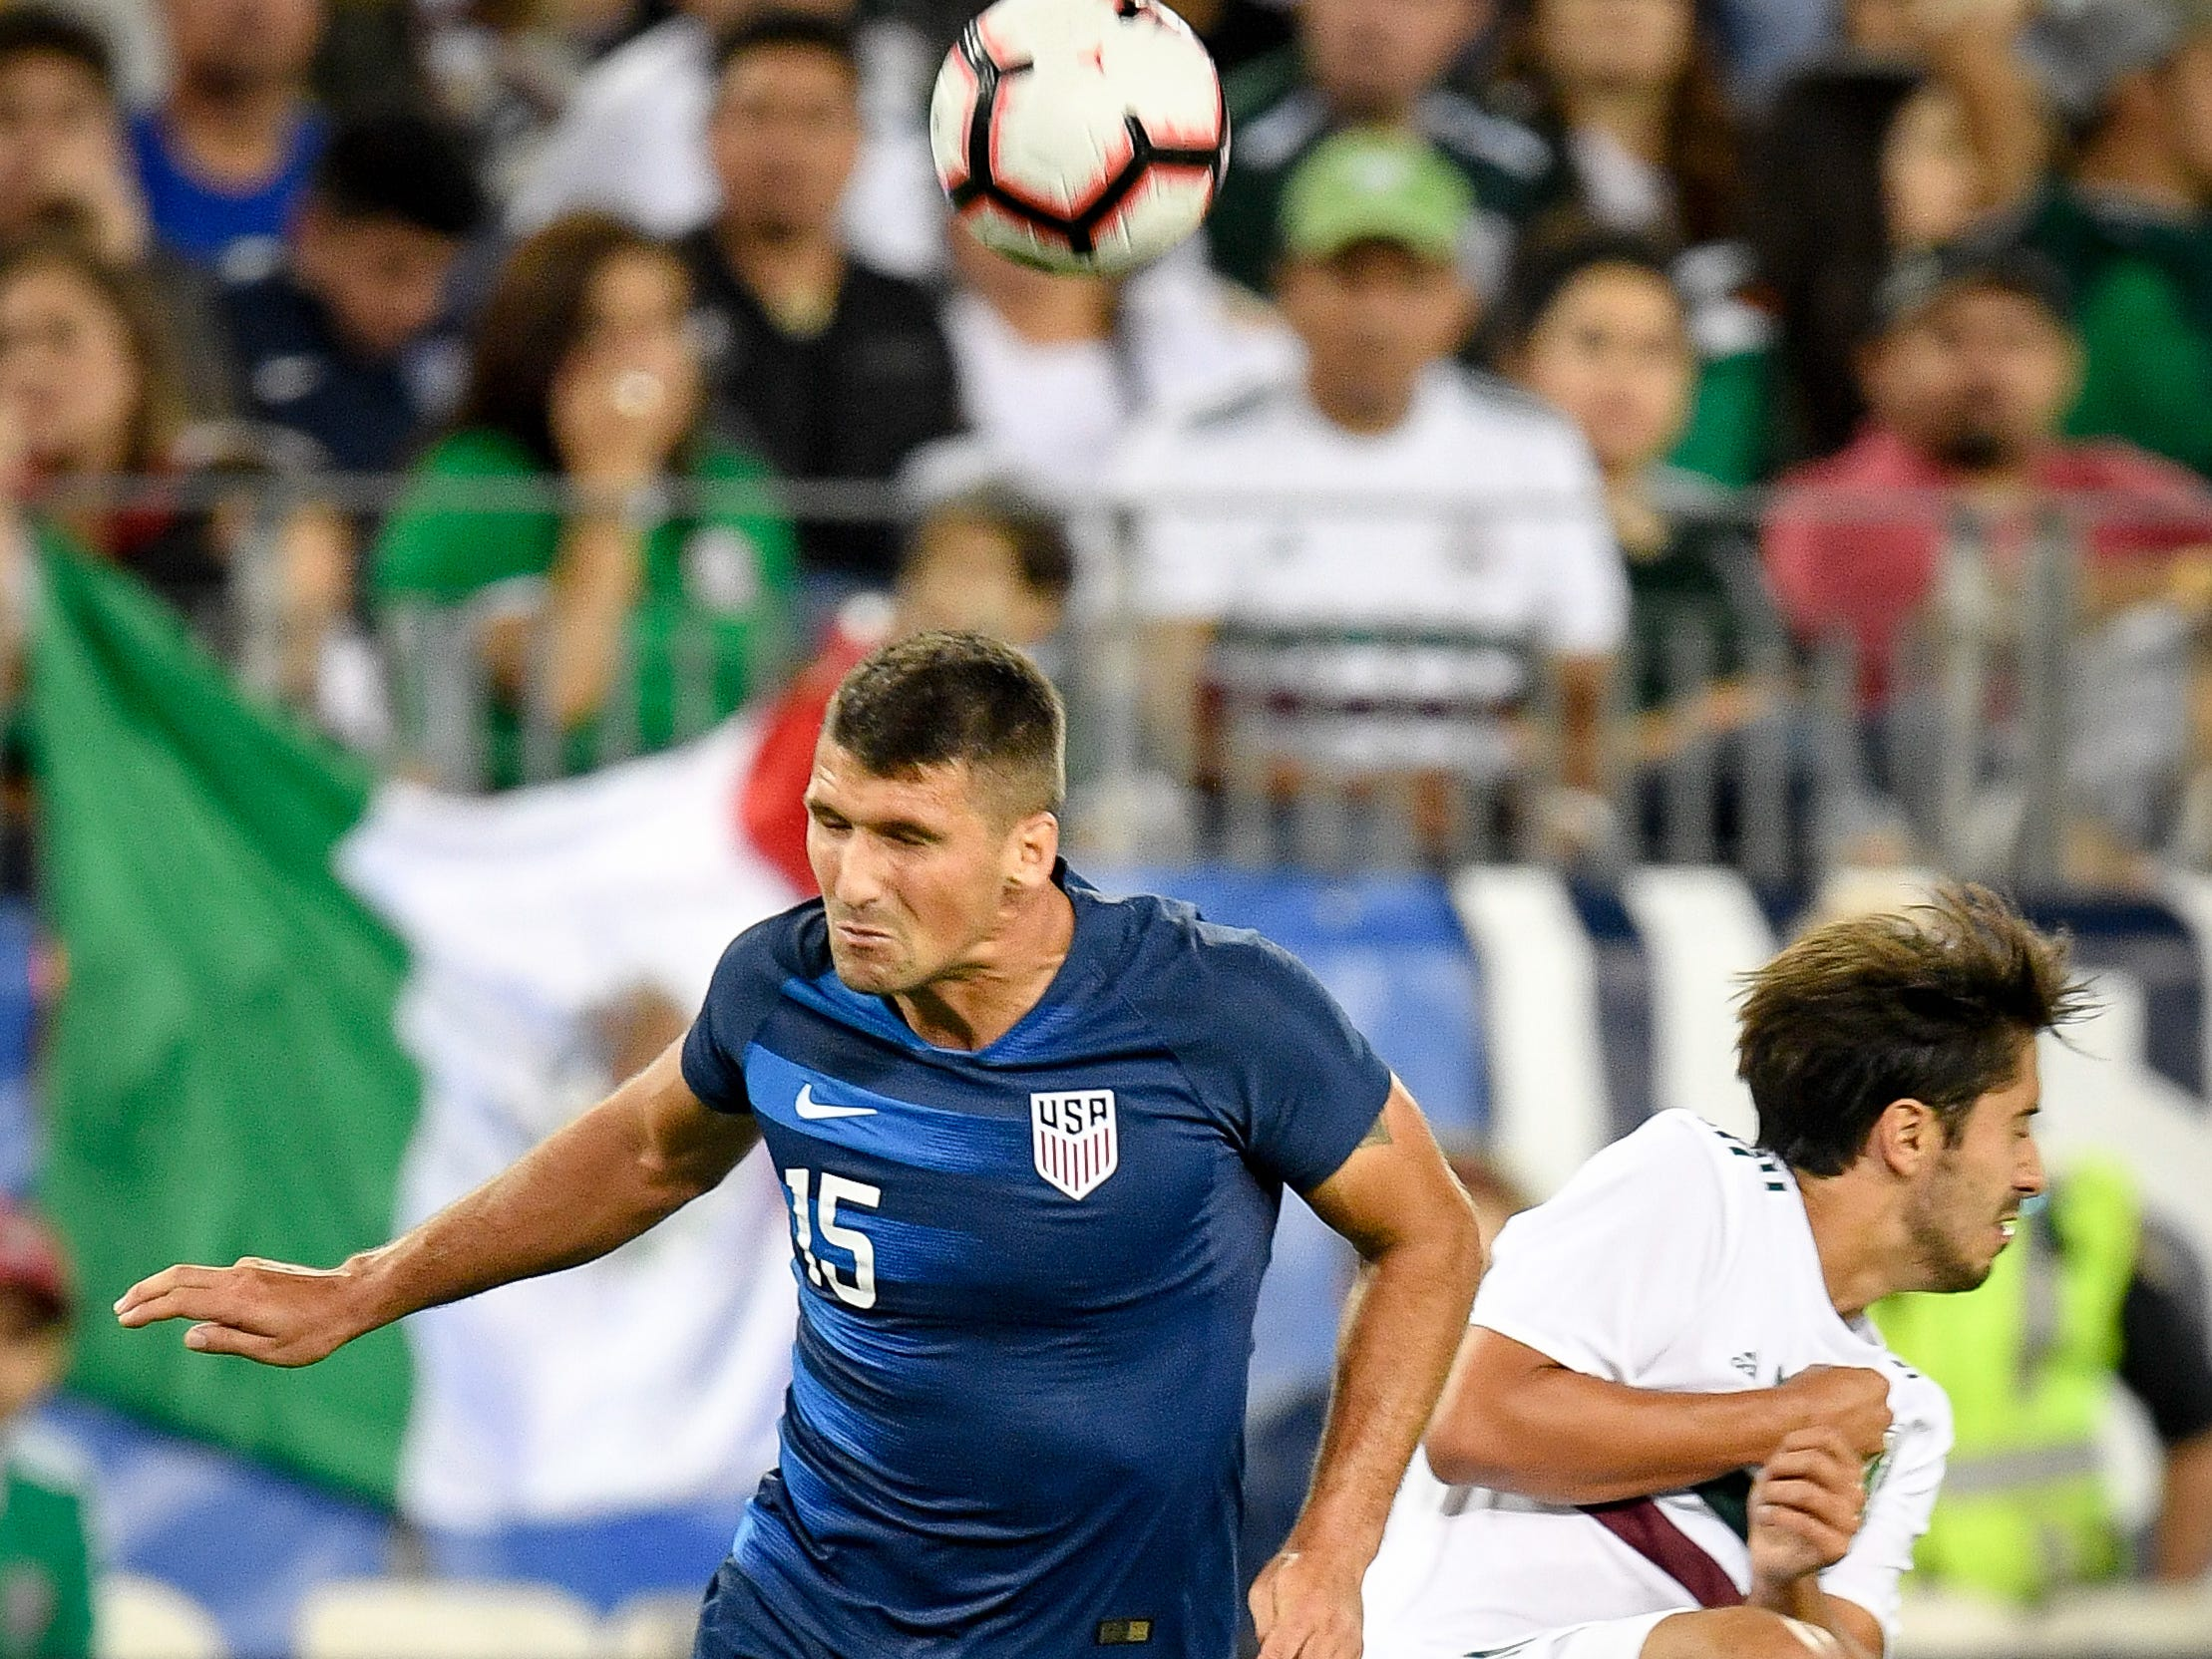 USA defender Eric Lichaj (15) battles Mexico defender Jose Abella (19) during the second half at Nissan Stadium in Nashville, Tenn., Tuesday, Sept. 11, 2018.